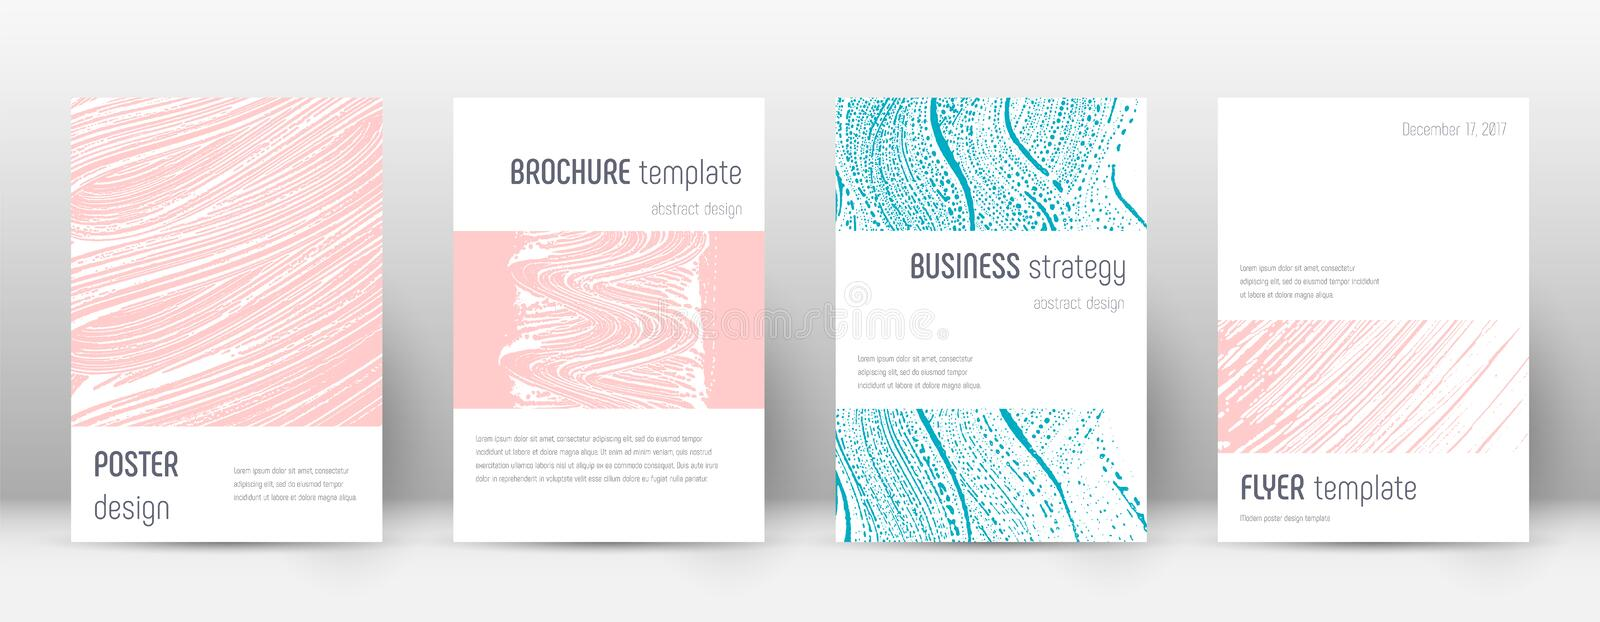 Cover page design template. Minimalistic brochure. Layout. Classy trendy abstract cover page. Pink and blue grunge texture background. Unusual poster stock illustration